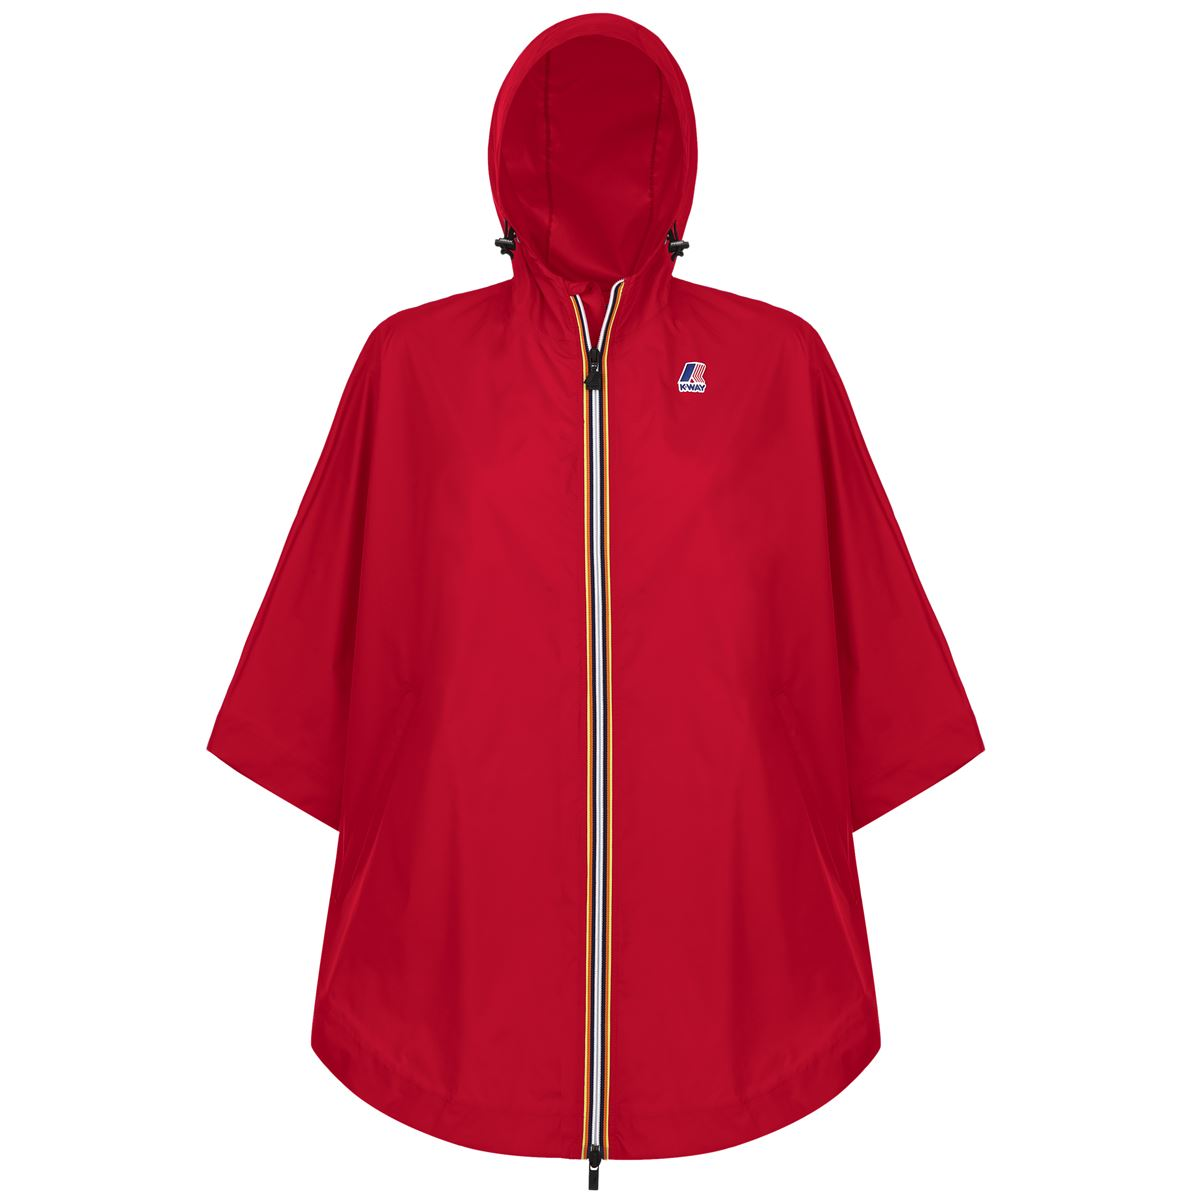 K-Way Jacket LE VRAI 3.0 MORGAN Poncho Kids Boy Girl